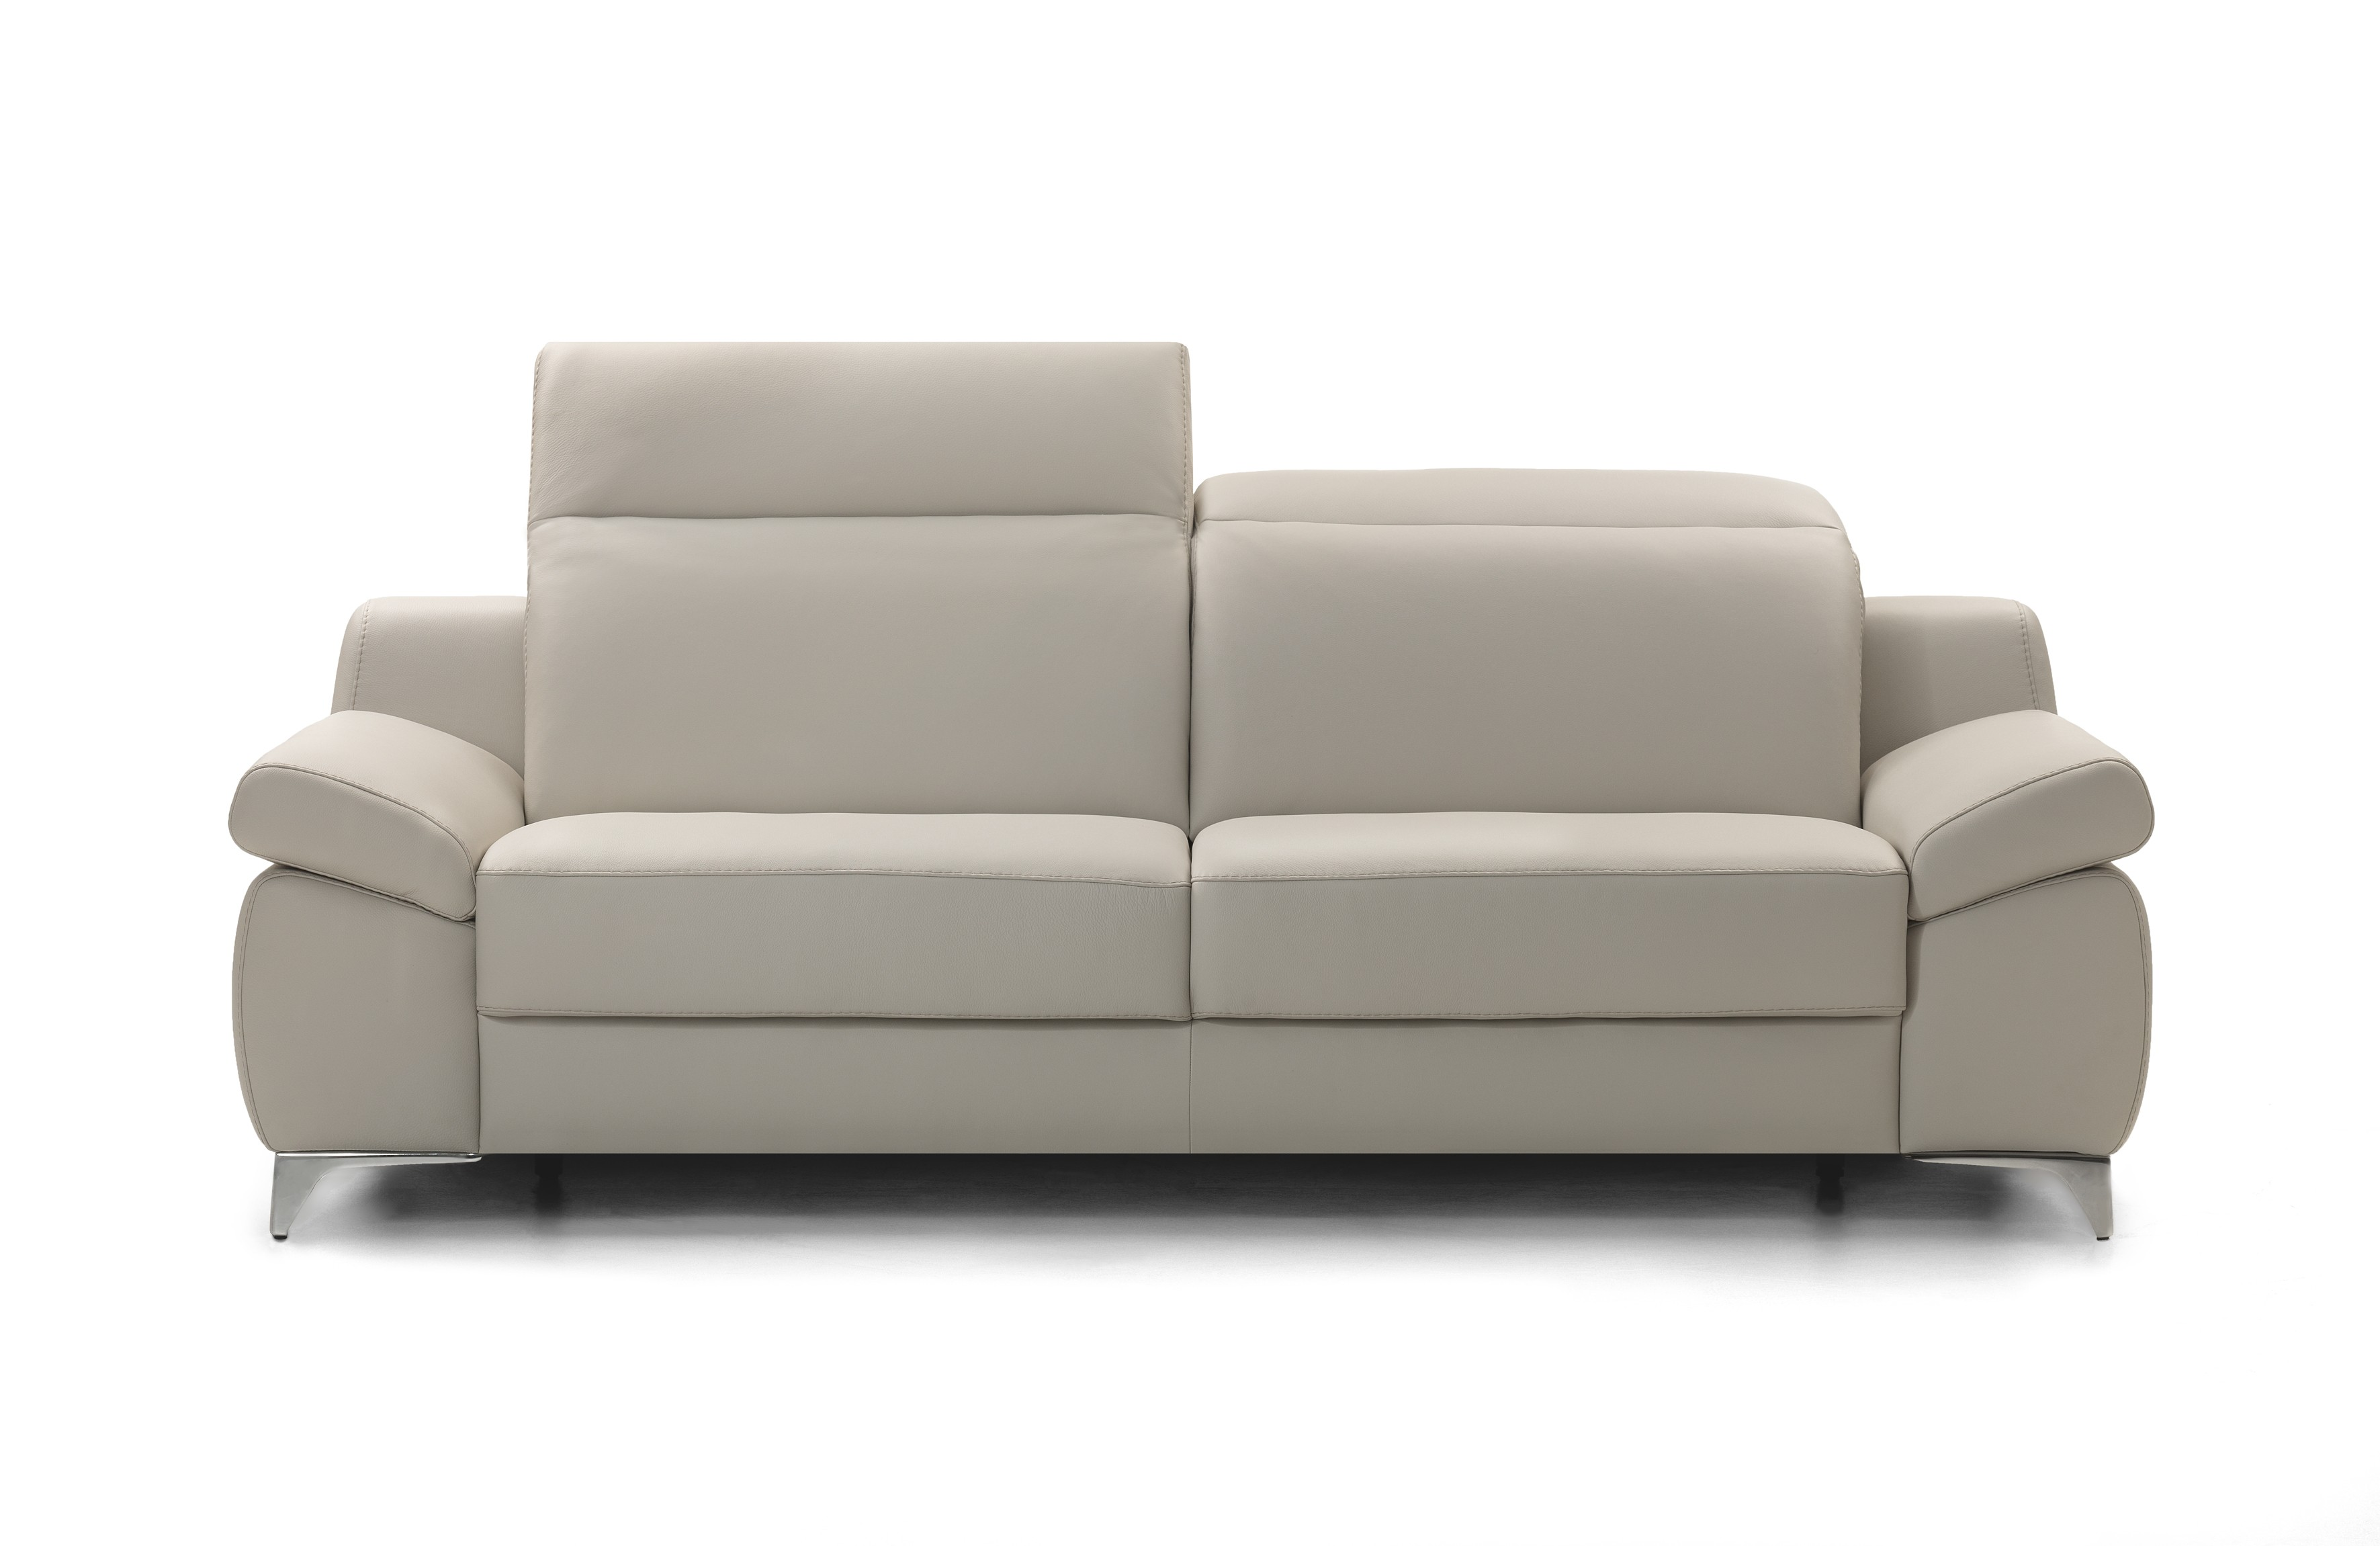 Belgium Leather Sofas Home Furniture Sofa Prices Set Philippines Thesofa